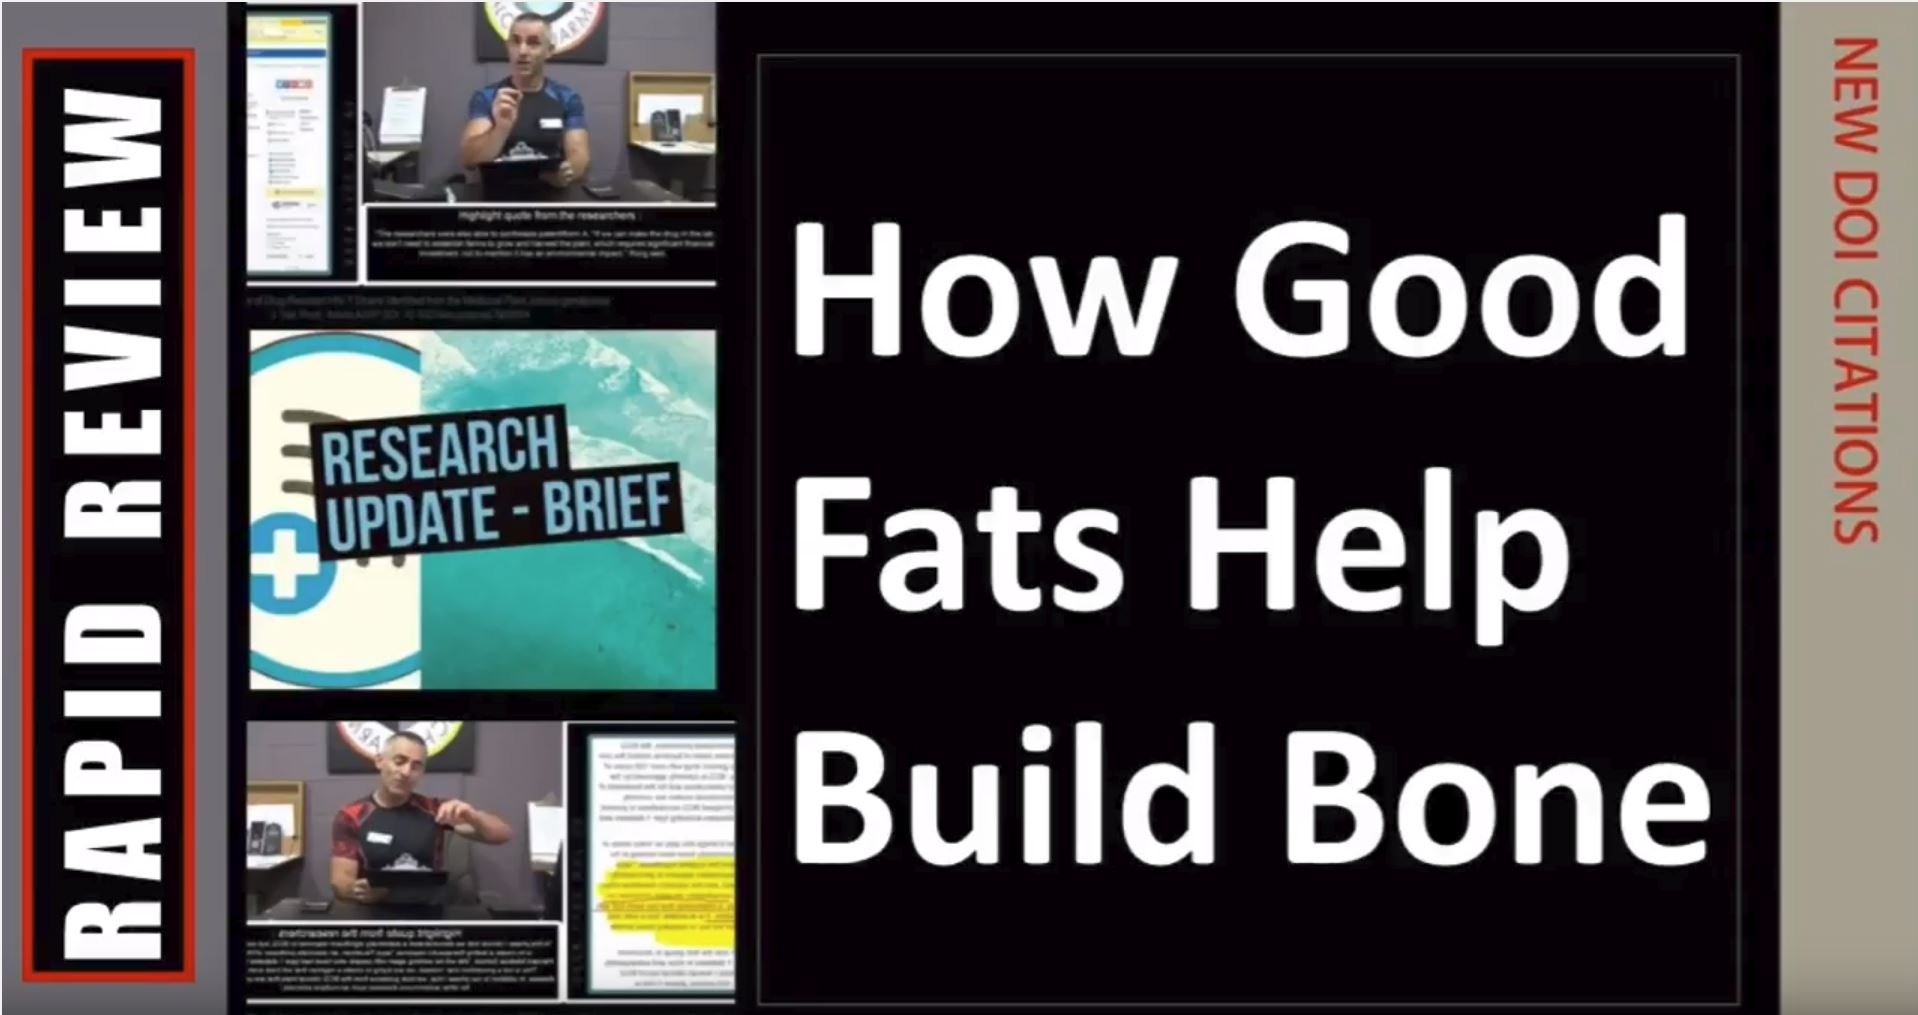 How Good Fats Build Bone